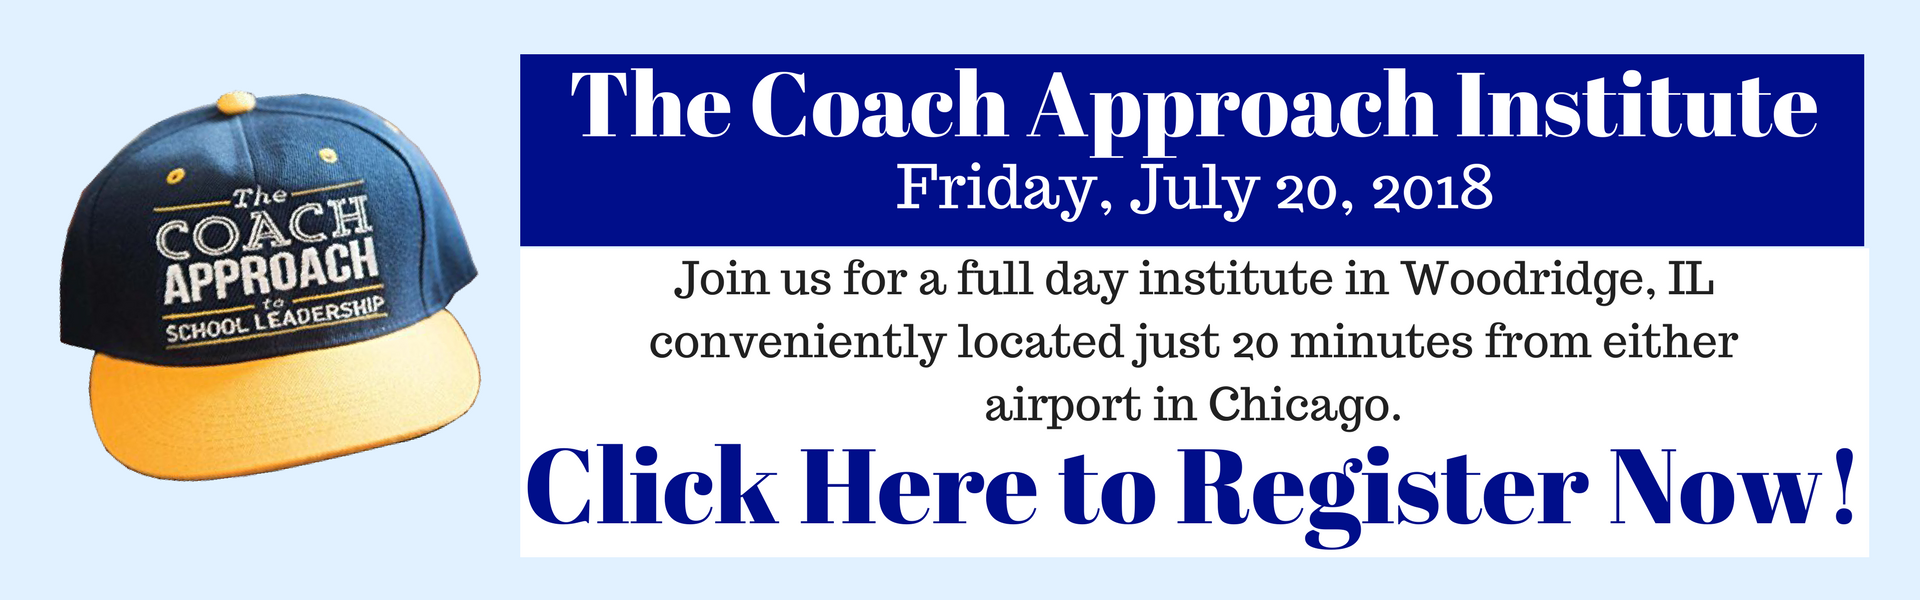 Coach Approach Institute Registration